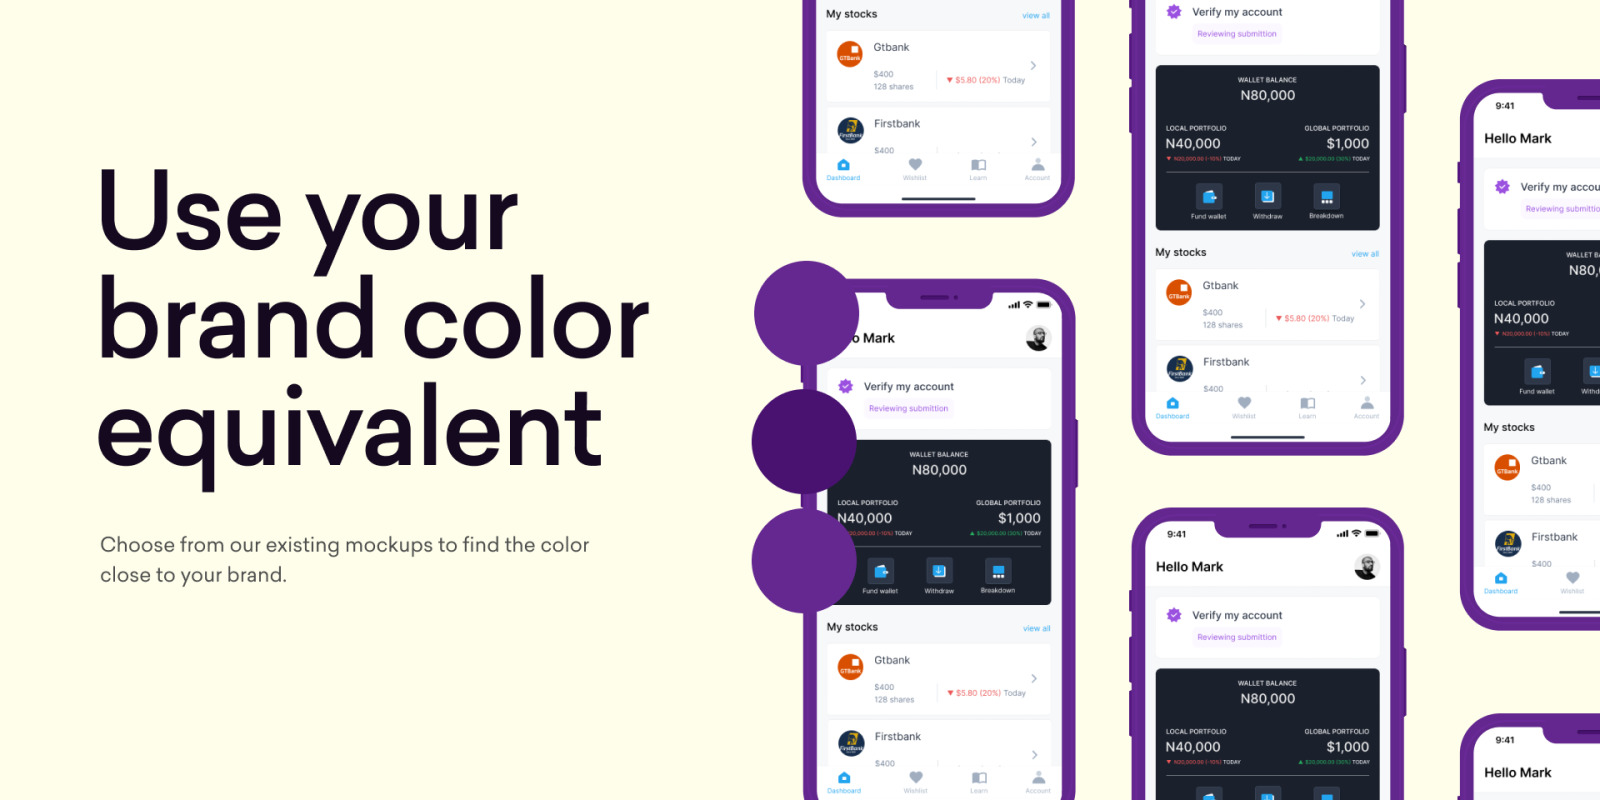 Moockly colorful app mockups